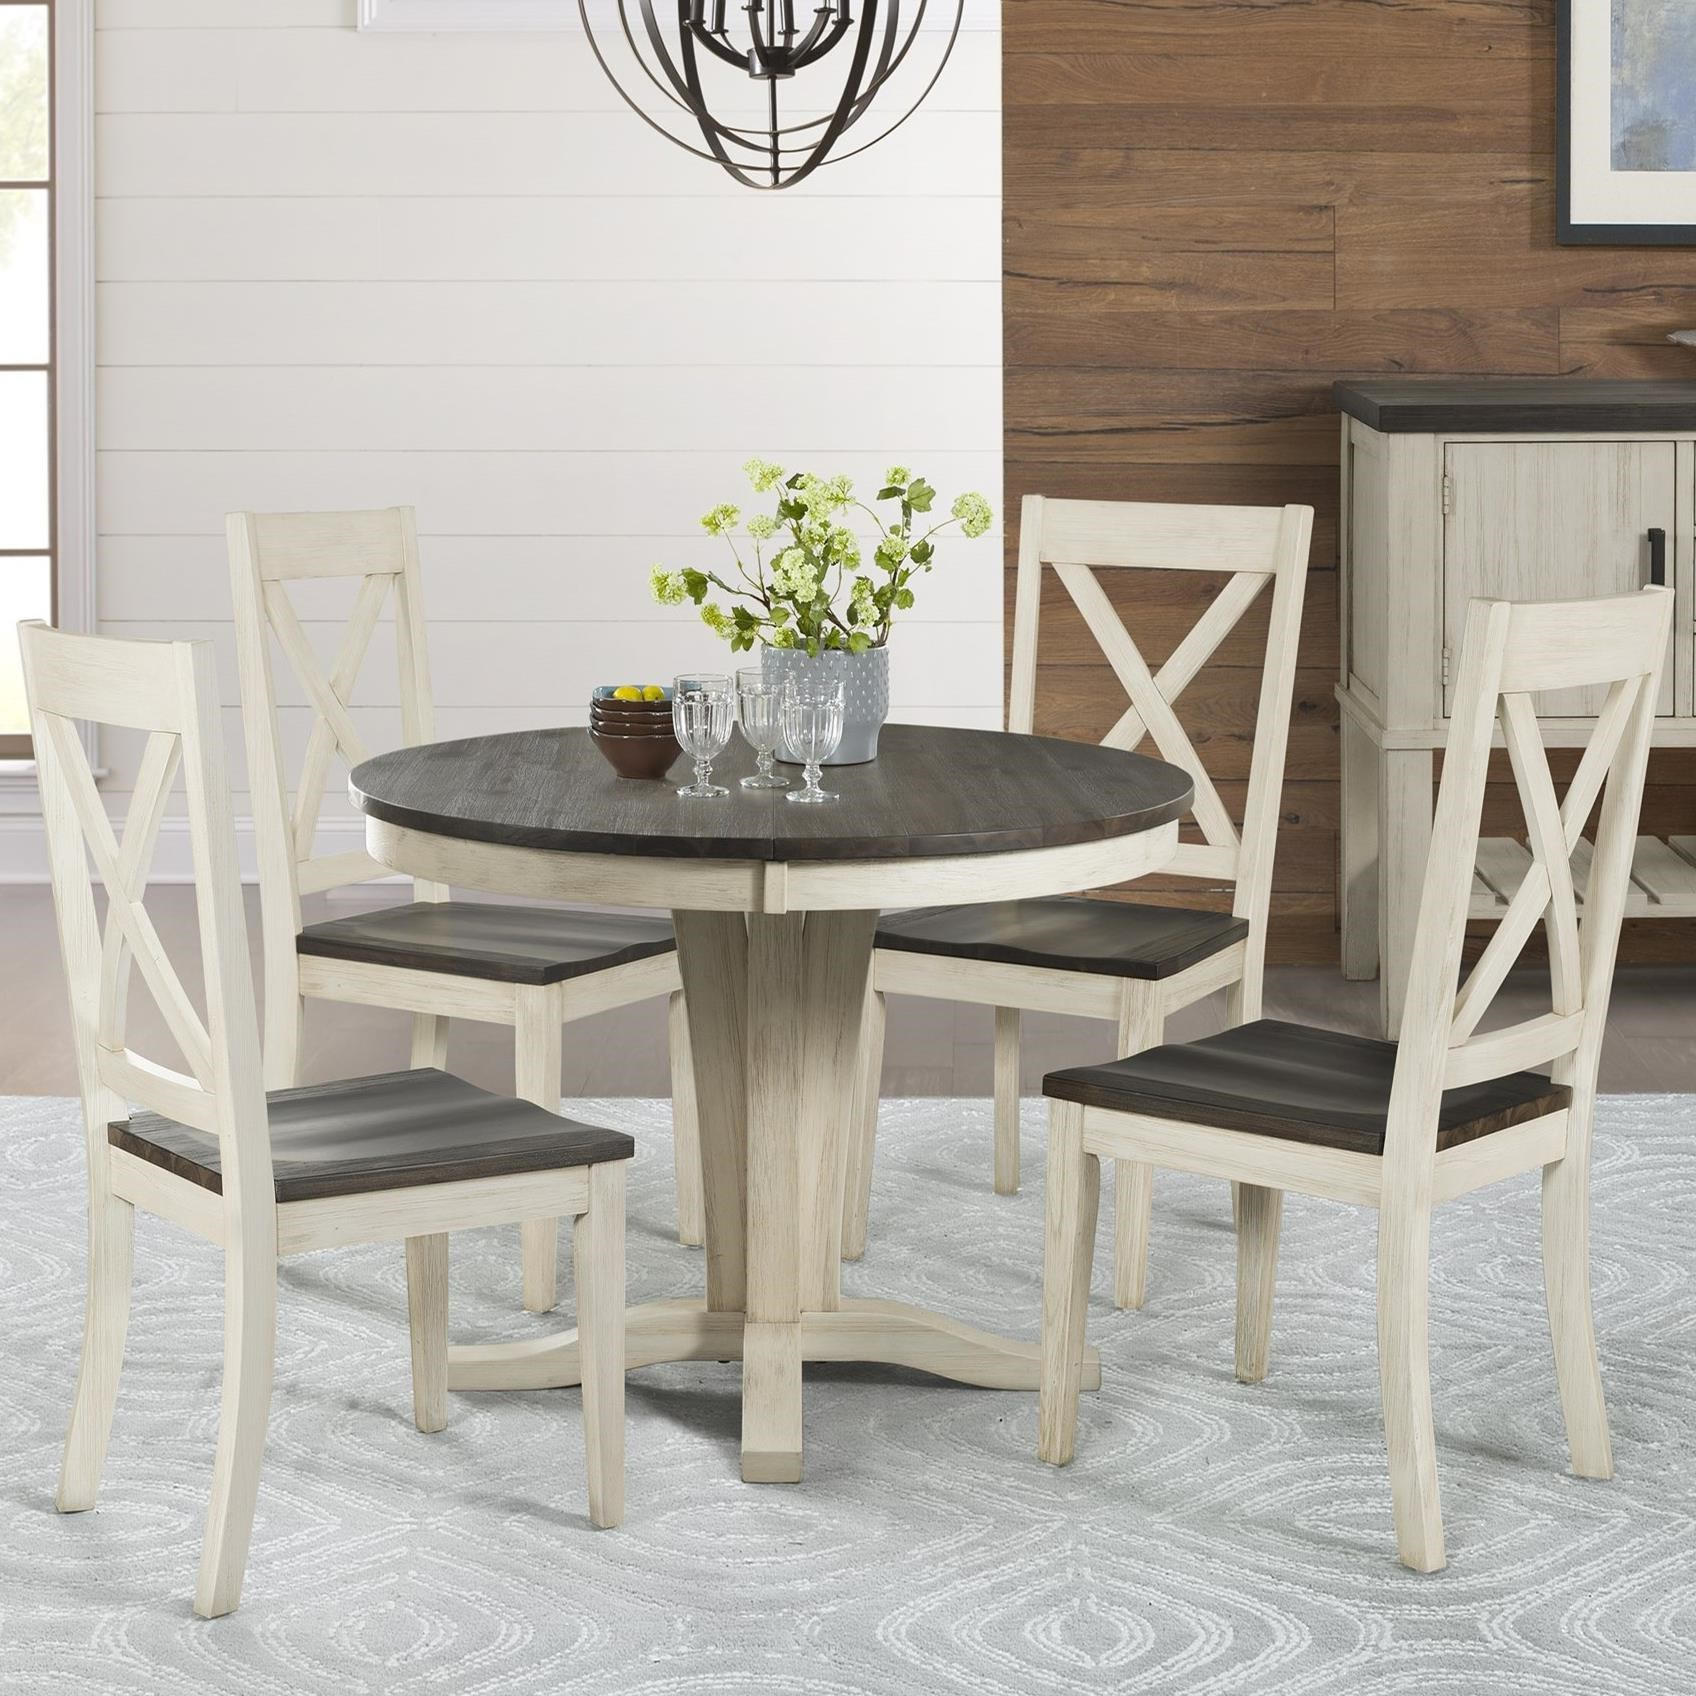 Most Recently Released Aamerica Huron 5 Piece Pedestal Table And X Back Chair Set Within Transitional 4 Seating Drop Leaf Casual Dining Tables (View 13 of 25)